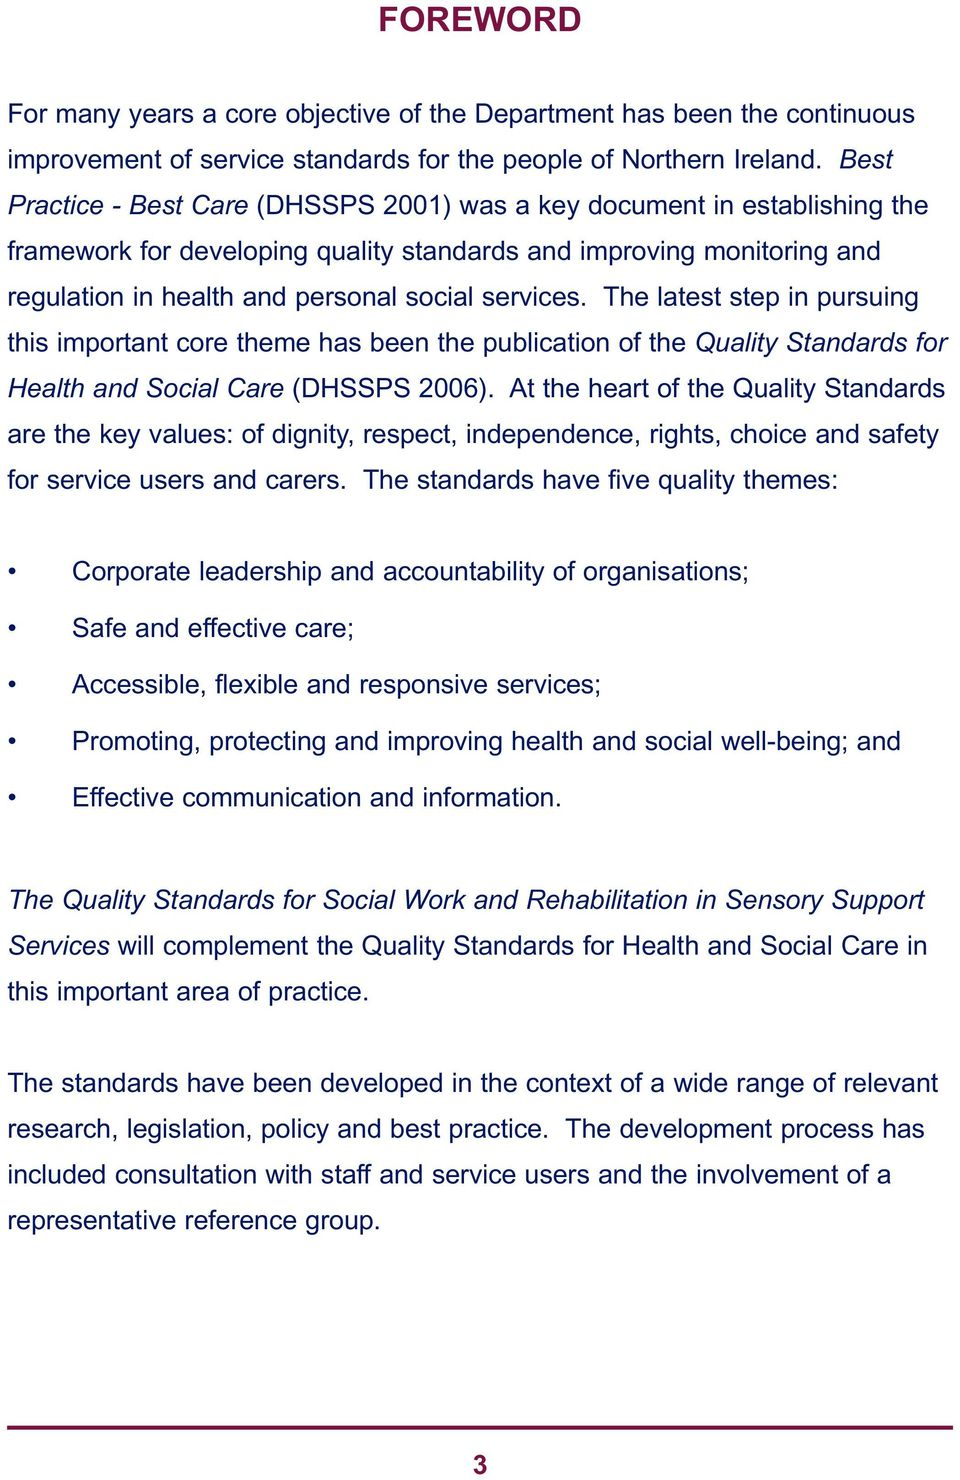 services. The latest step in pursuing this important core theme has been the publication of the Quality Standards for Health and Social Care (DHSSPS 2006).